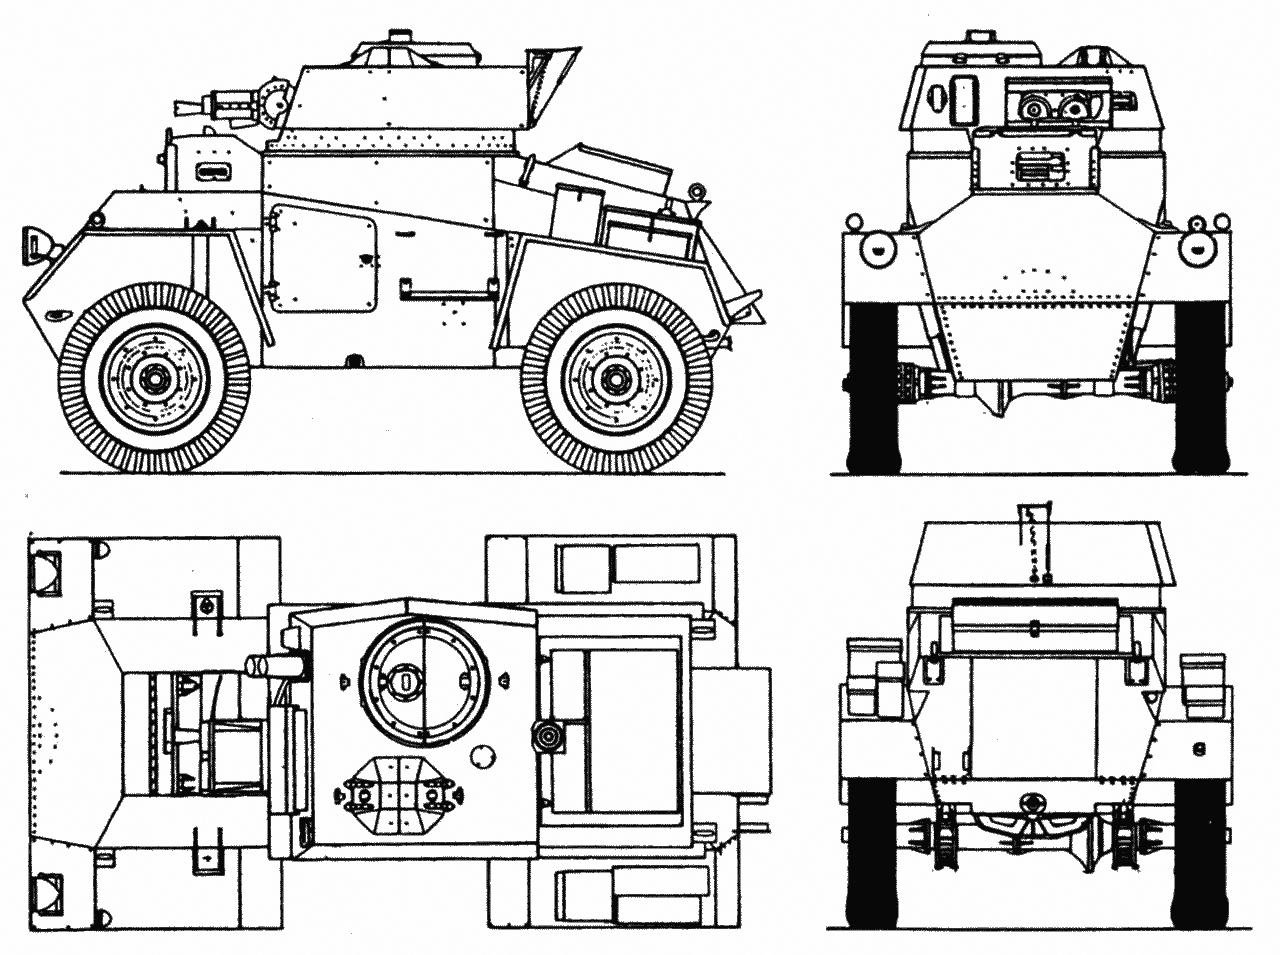 Guy armoured car guy mark i armoured car 4 view drawing malvernweather Images